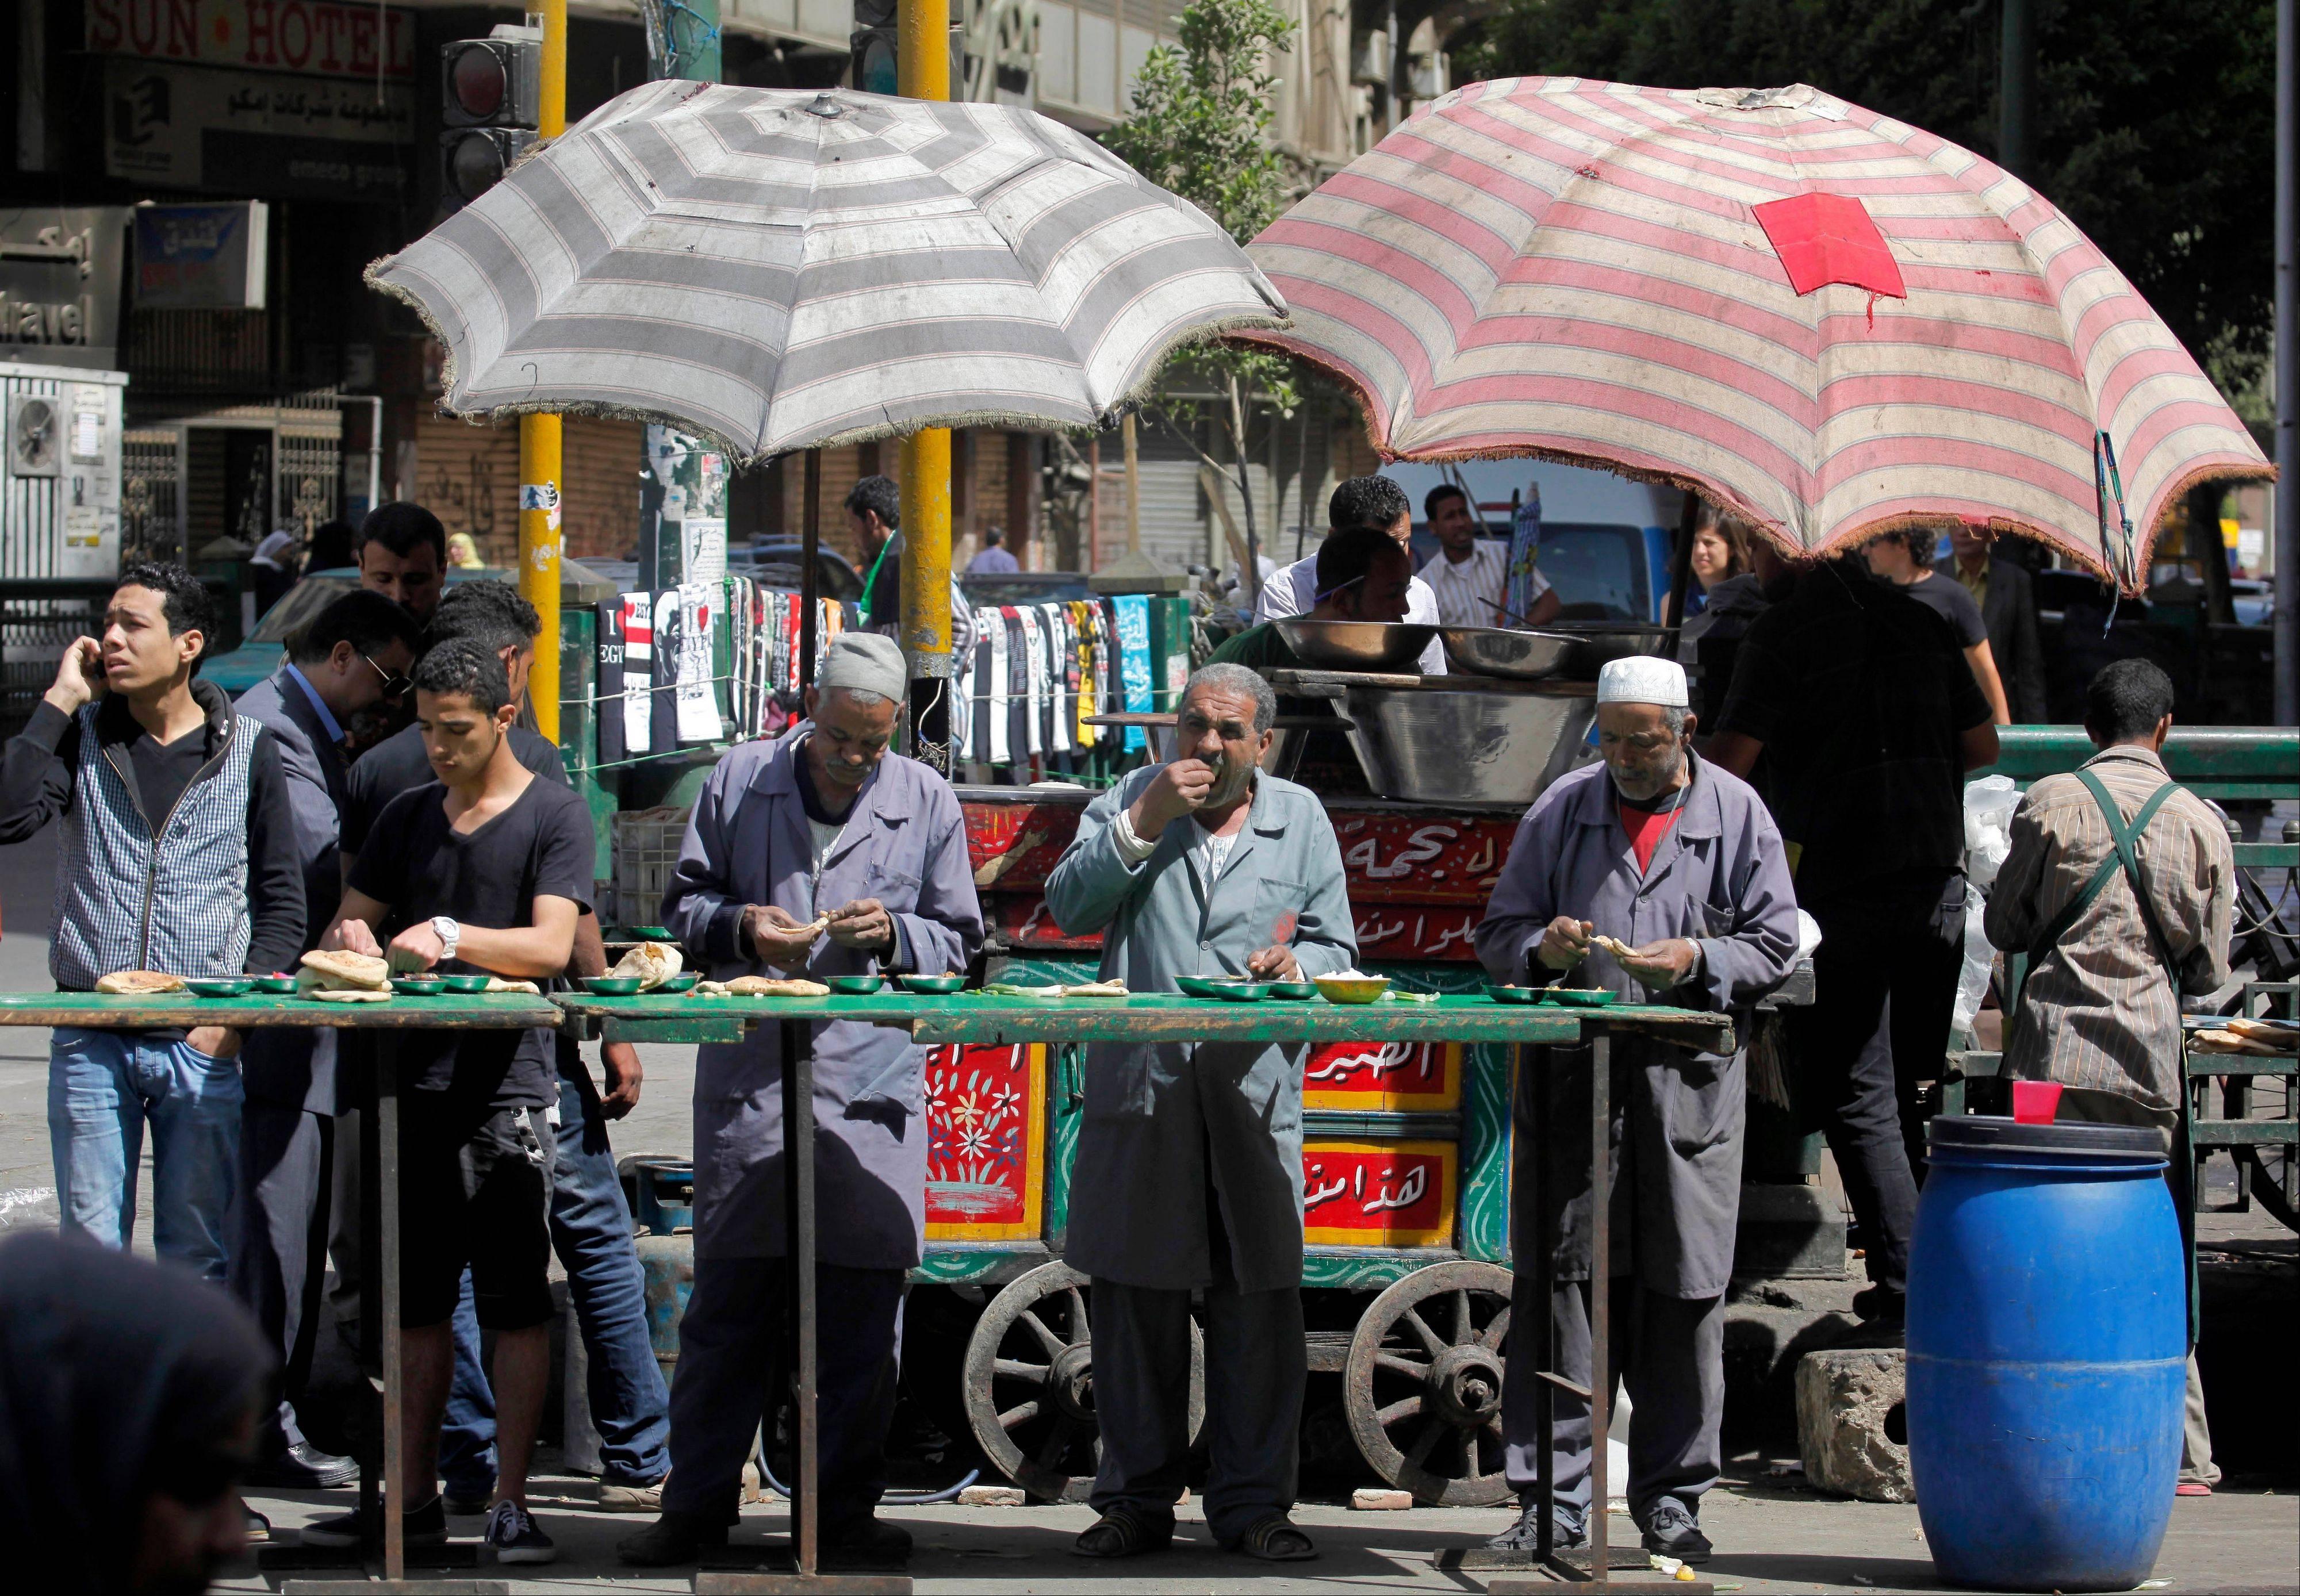 Egyptians eat foul, or fava beans, at an open-air cart restaurant Saturday in Cairo. Egypt has faced near-constant turmoil in the more than two years since longtime, authoritarian leader Hosni Mubarak was overthrown in a revolt.